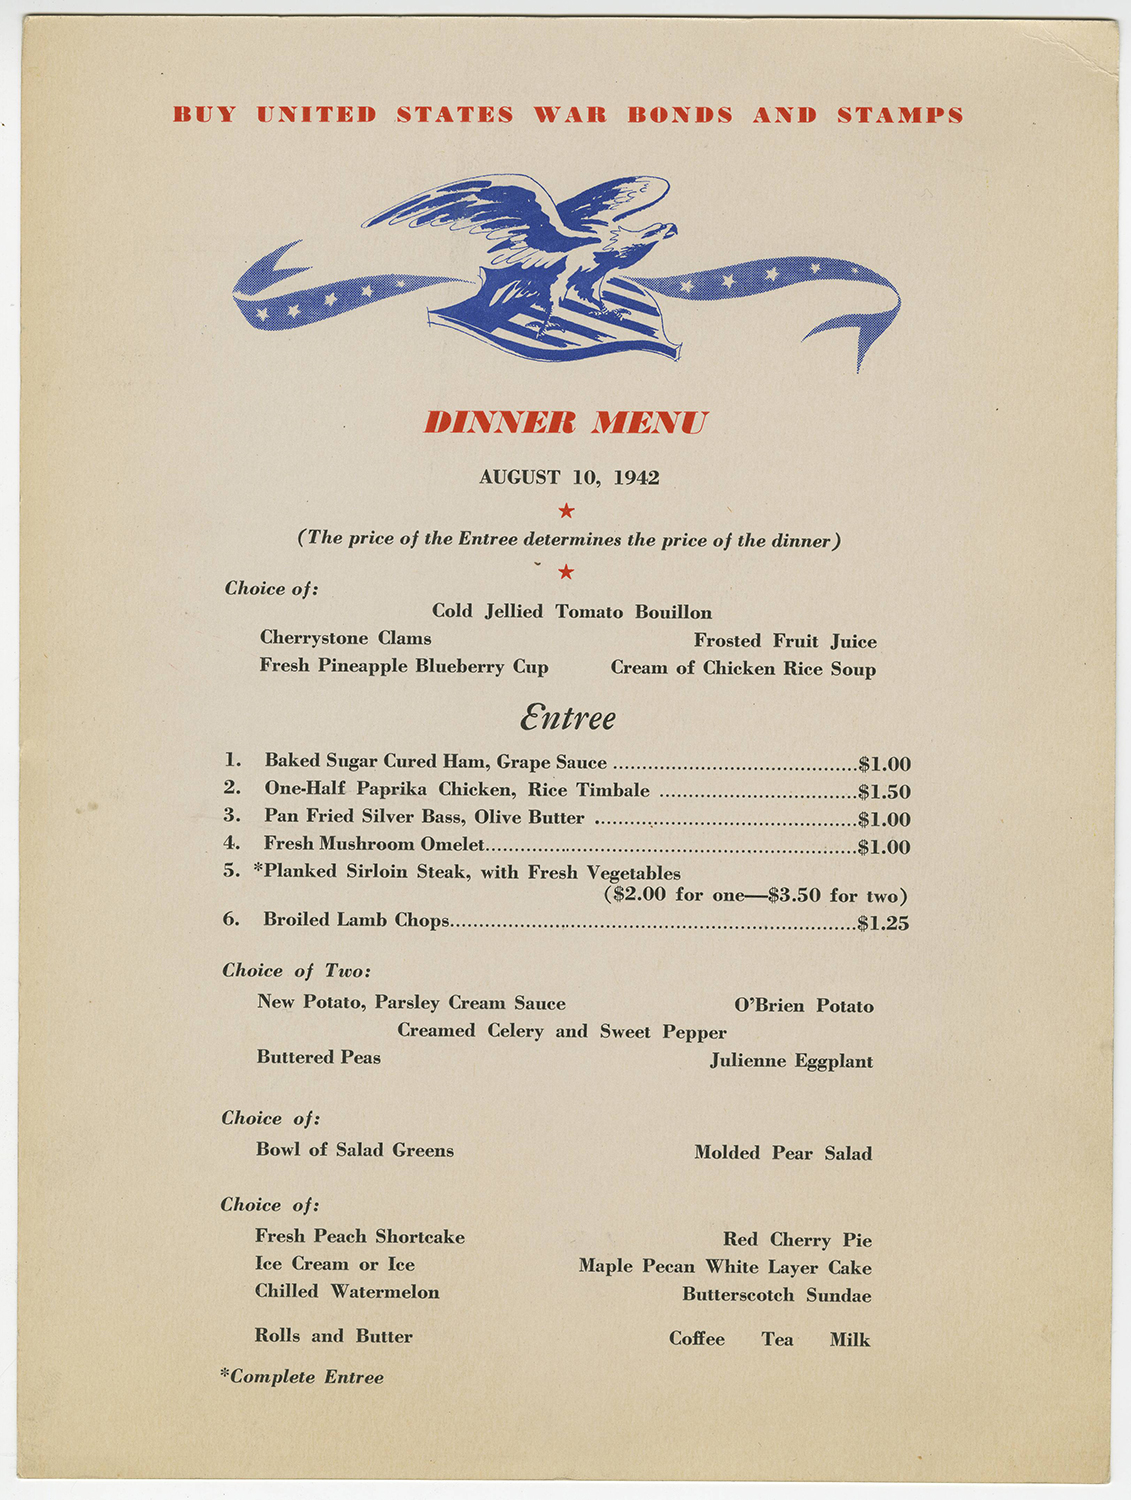 Dinner menu, 1942, Kaufmann's Dining Room